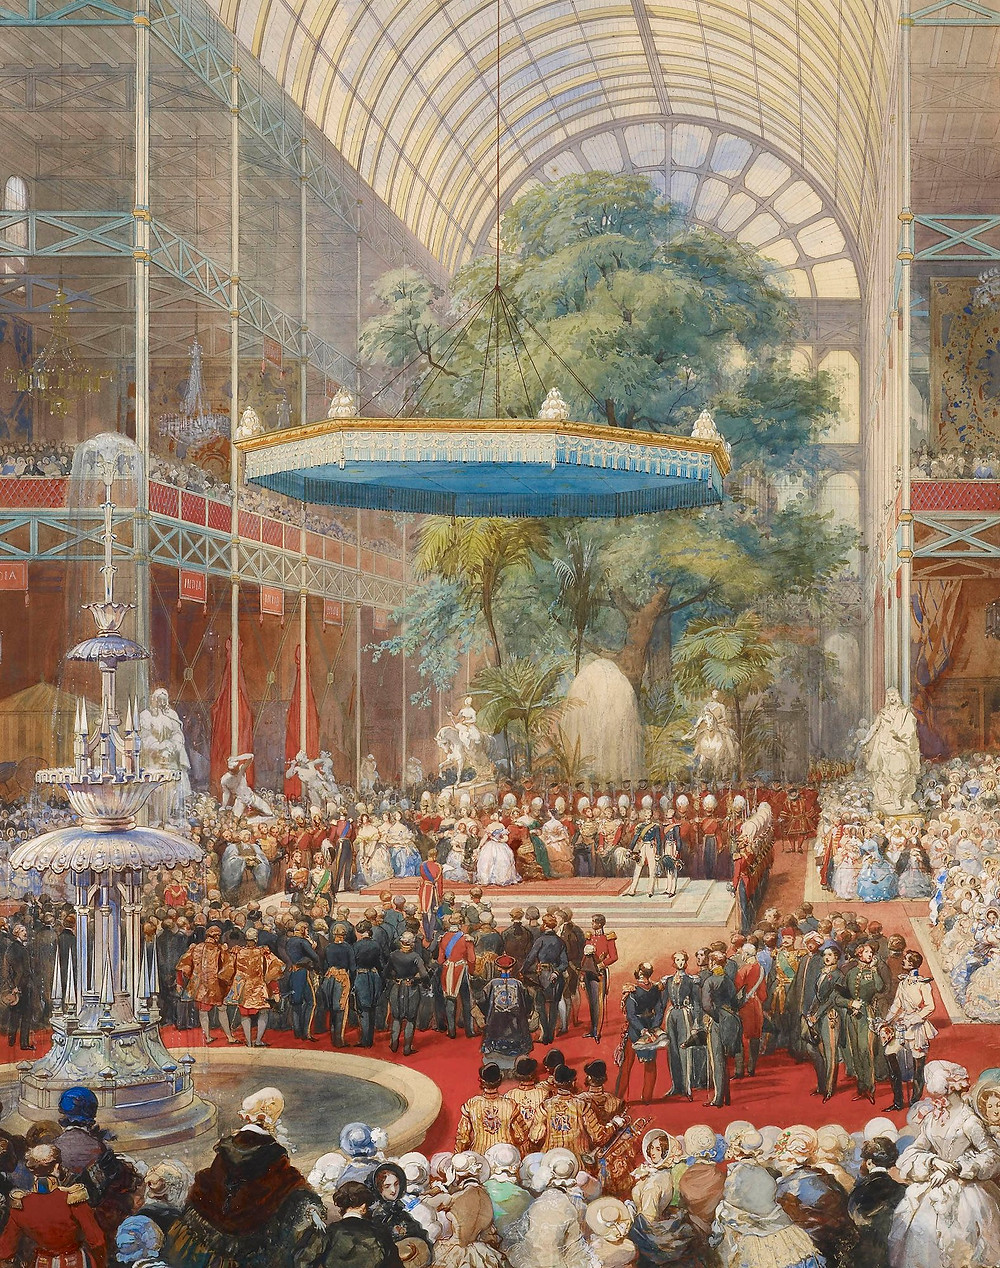 The opening of the Great Exhibition 1851 by Eugene-Louis Lami painting from the Royal collection